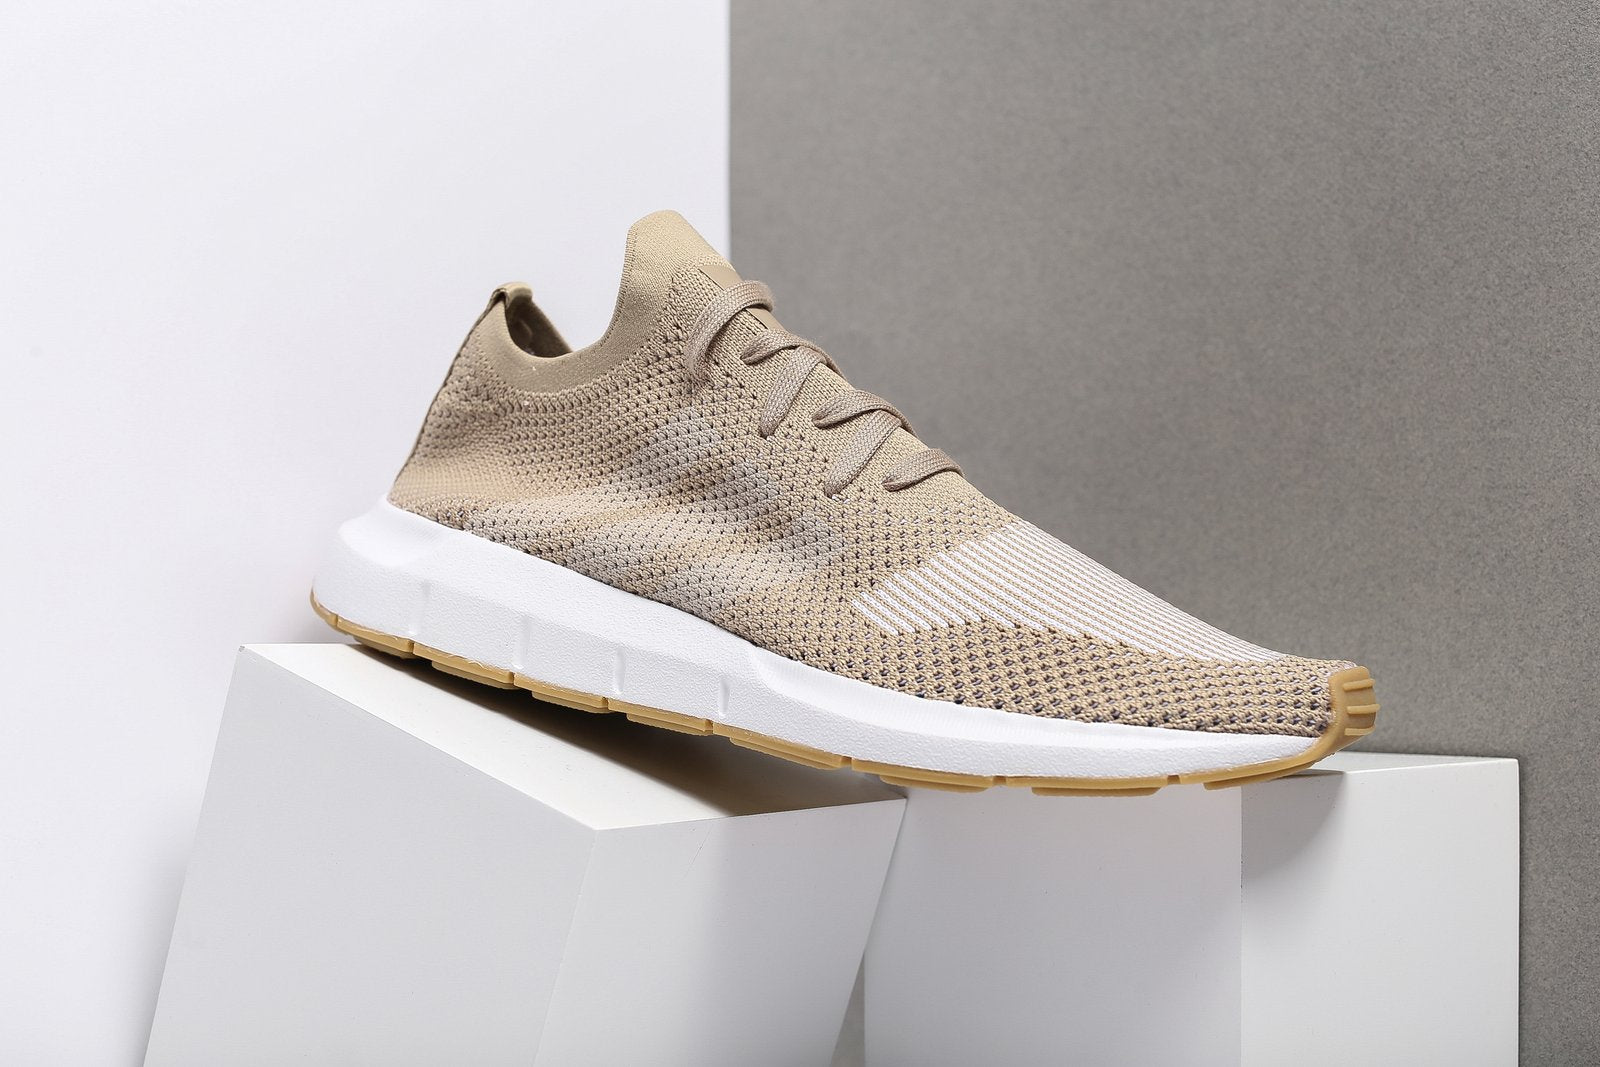 ADIDAS SWIFT RUN PK - Oneness Boutique 109986914